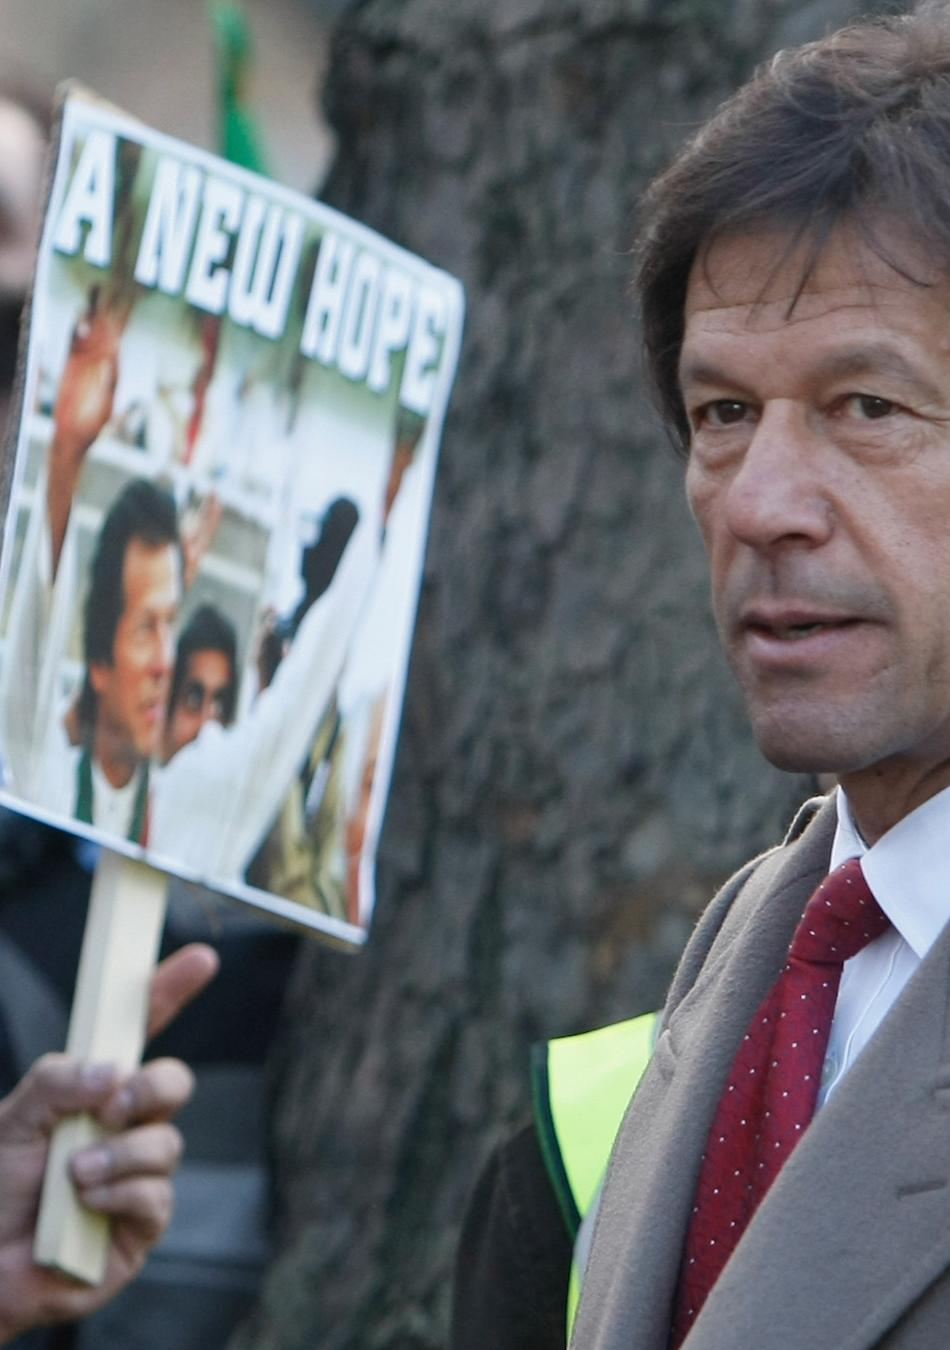 Imran And Jemima Khan Lead Protests At Downing Street